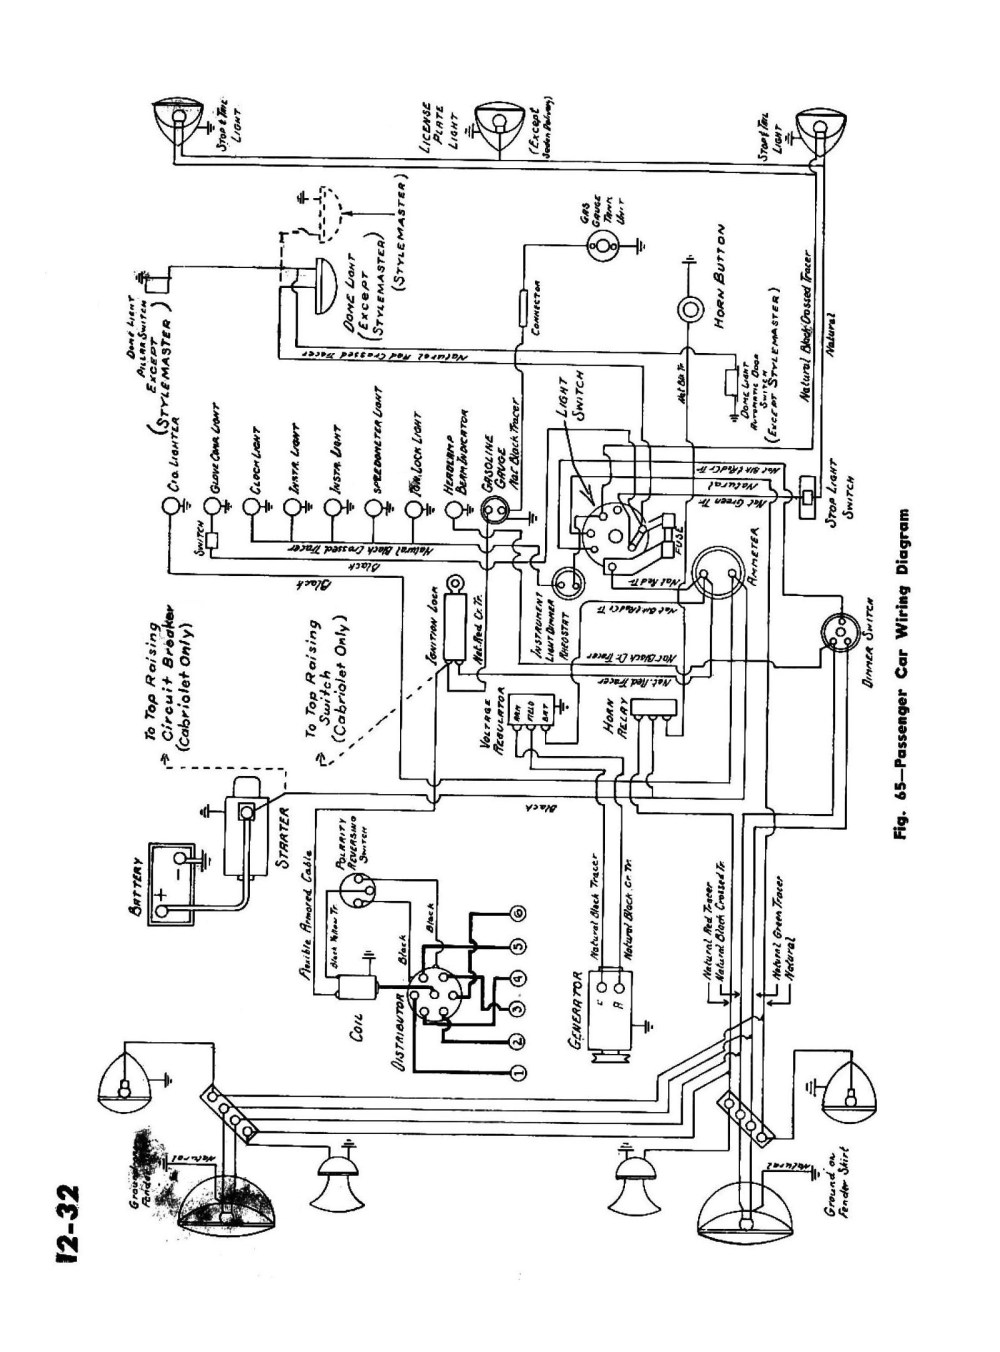 medium resolution of automotive wiring diagram website wiring library rh 74 evitta de automotive wiring symbols dodge wiring diagram